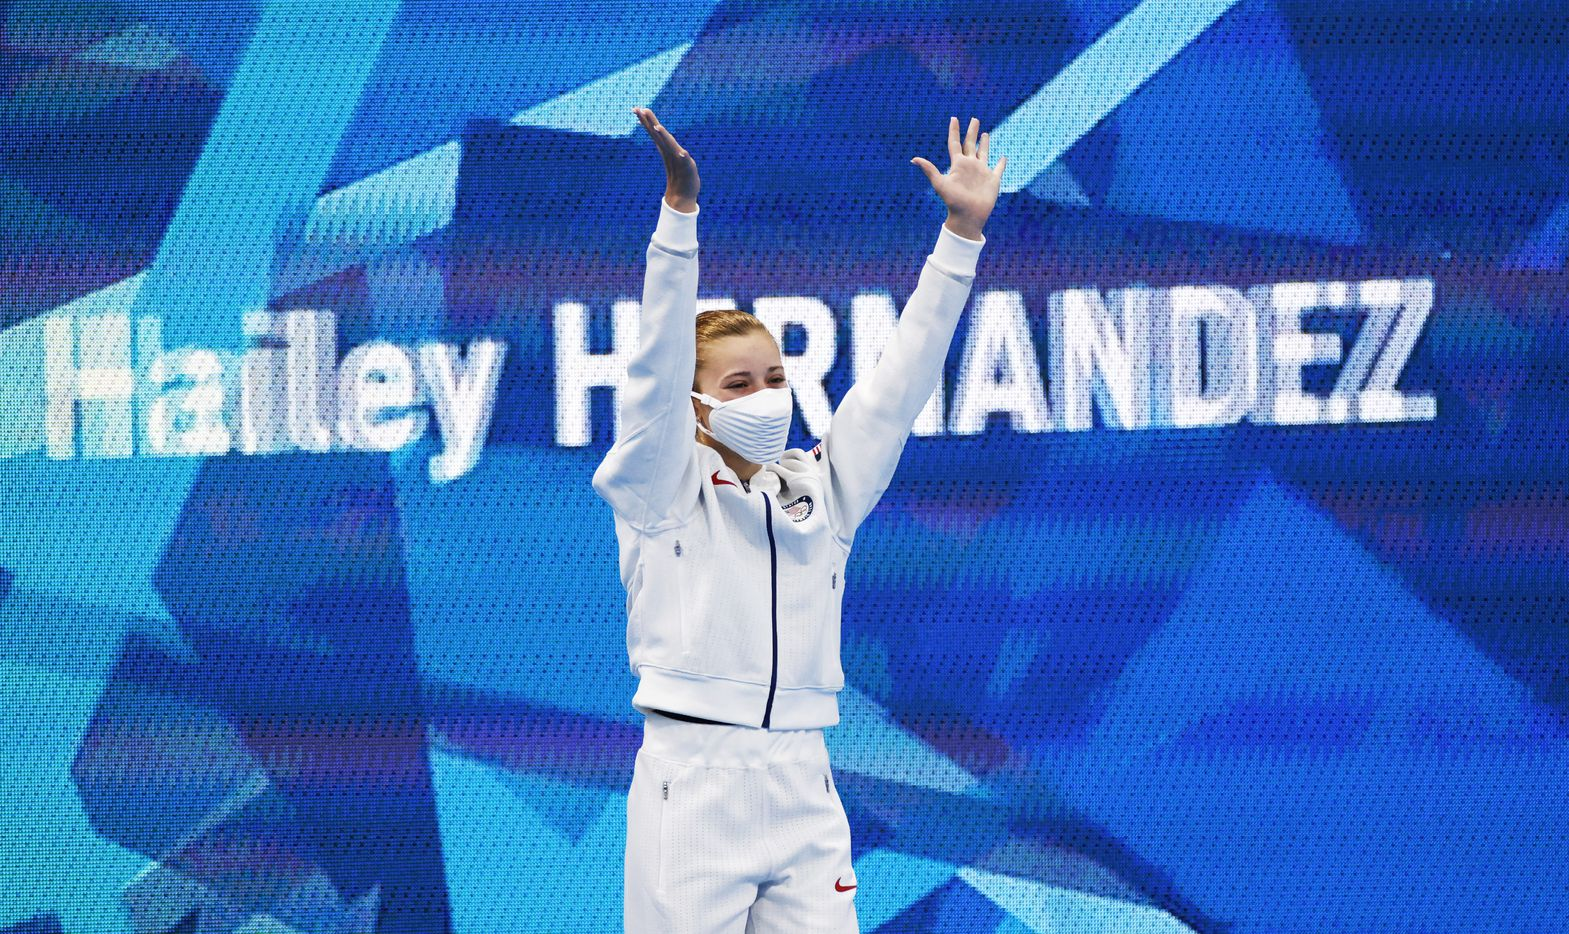 USA's Hailey Hernandez waves as she is introduced before the start of the women's 3 meter springboard semifinal competition during the postponed 2020 Tokyo Olympics at Tokyo Aquatics Centre, on Saturday, July 31, 2021, in Tokyo, Japan. (Vernon Bryant/The Dallas Morning News)